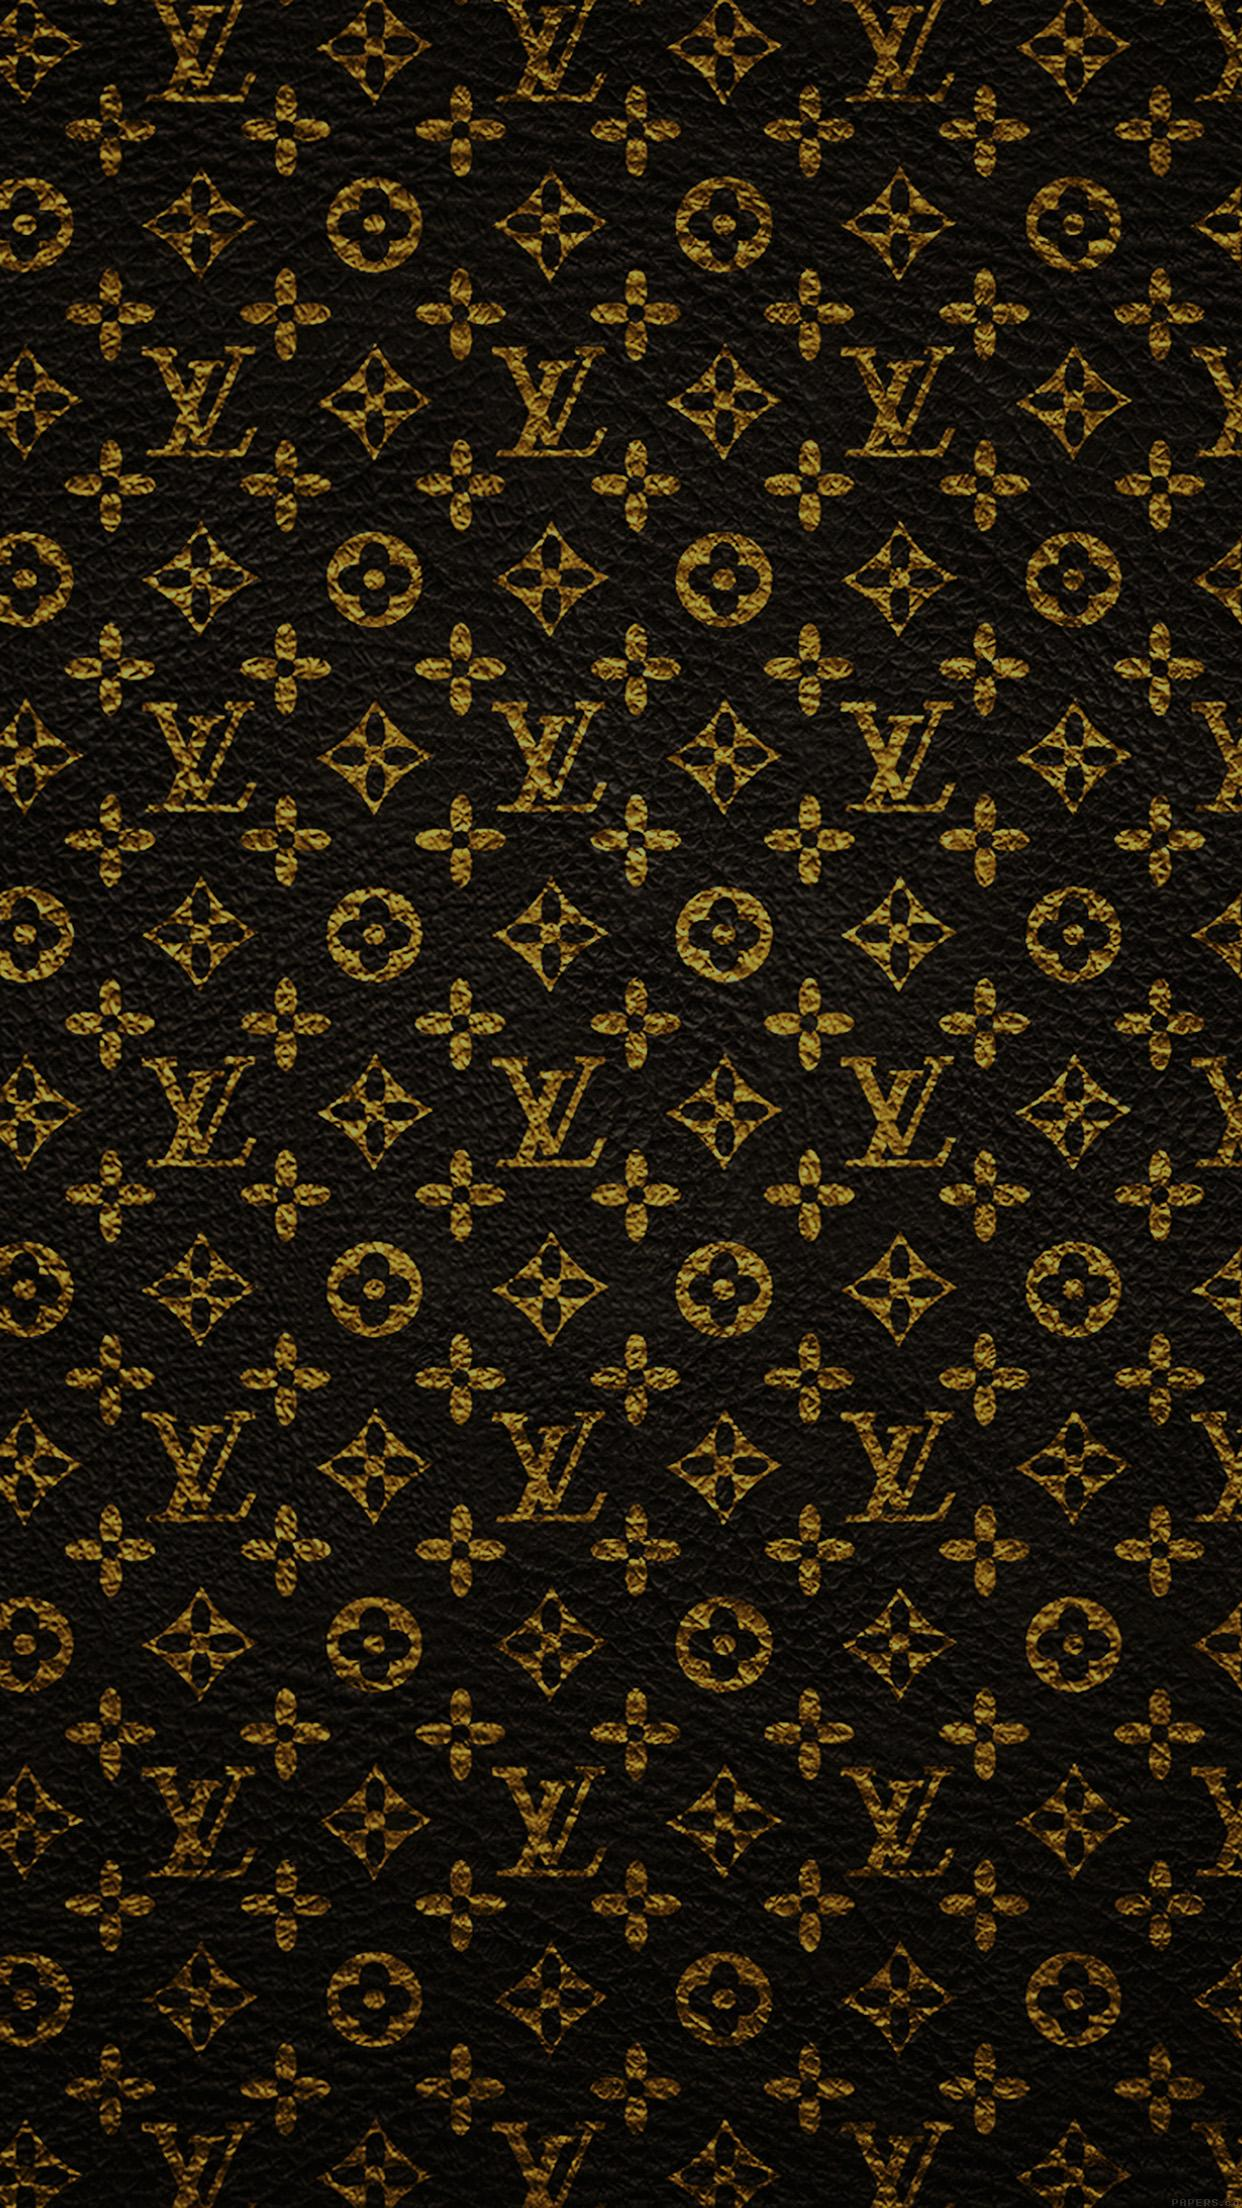 luxury louis vuitton 3Wallpapers iPhone Parallax Luxury Louis Vuitton